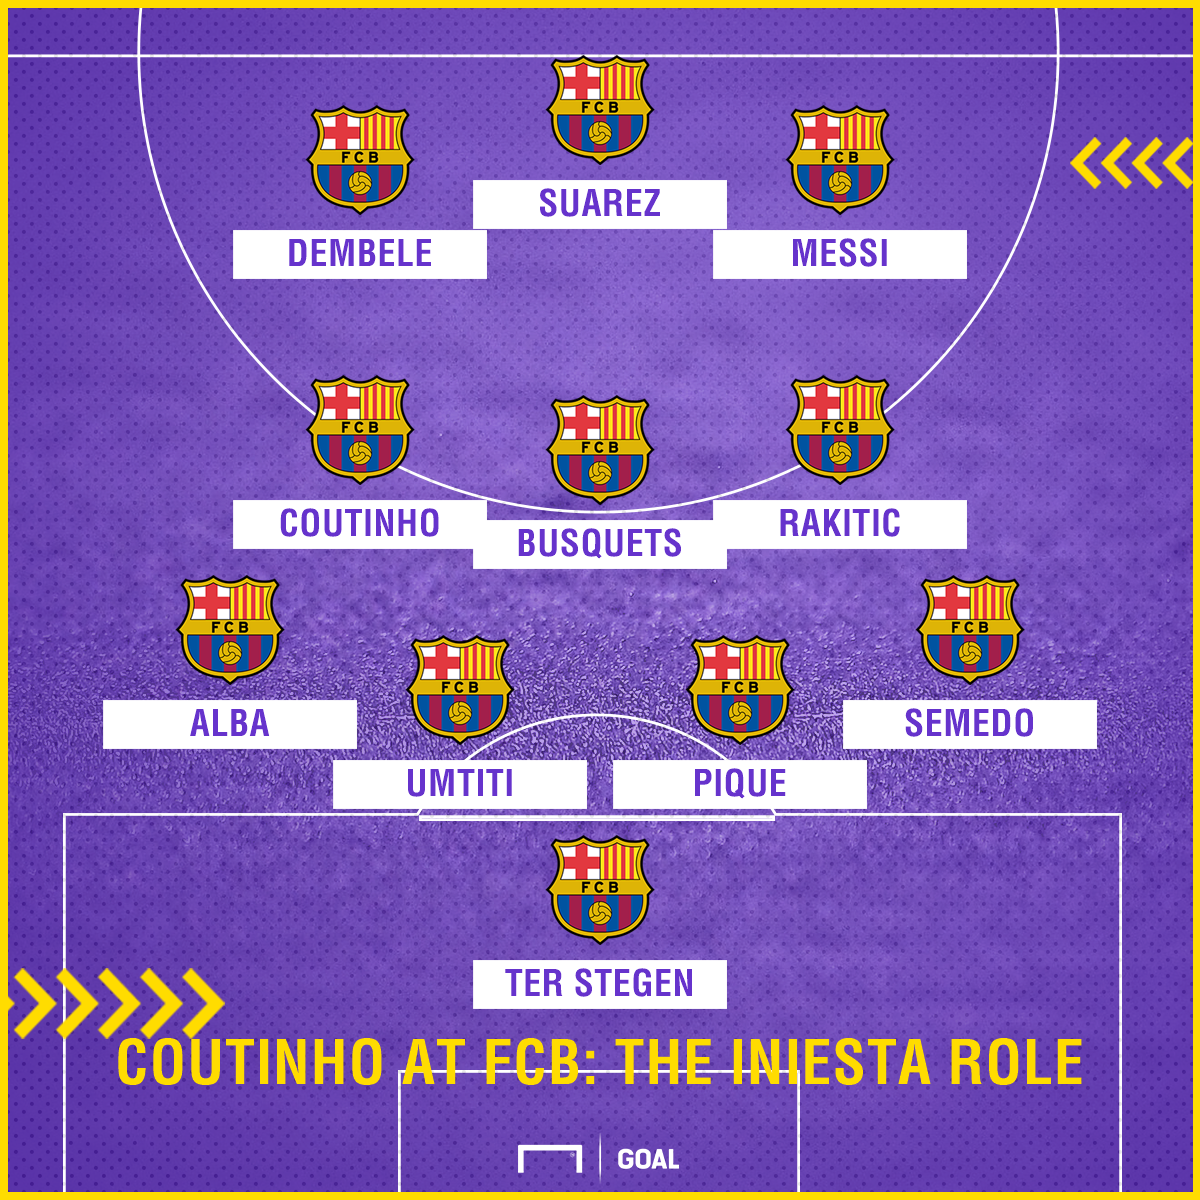 Coutinho Iniesta role